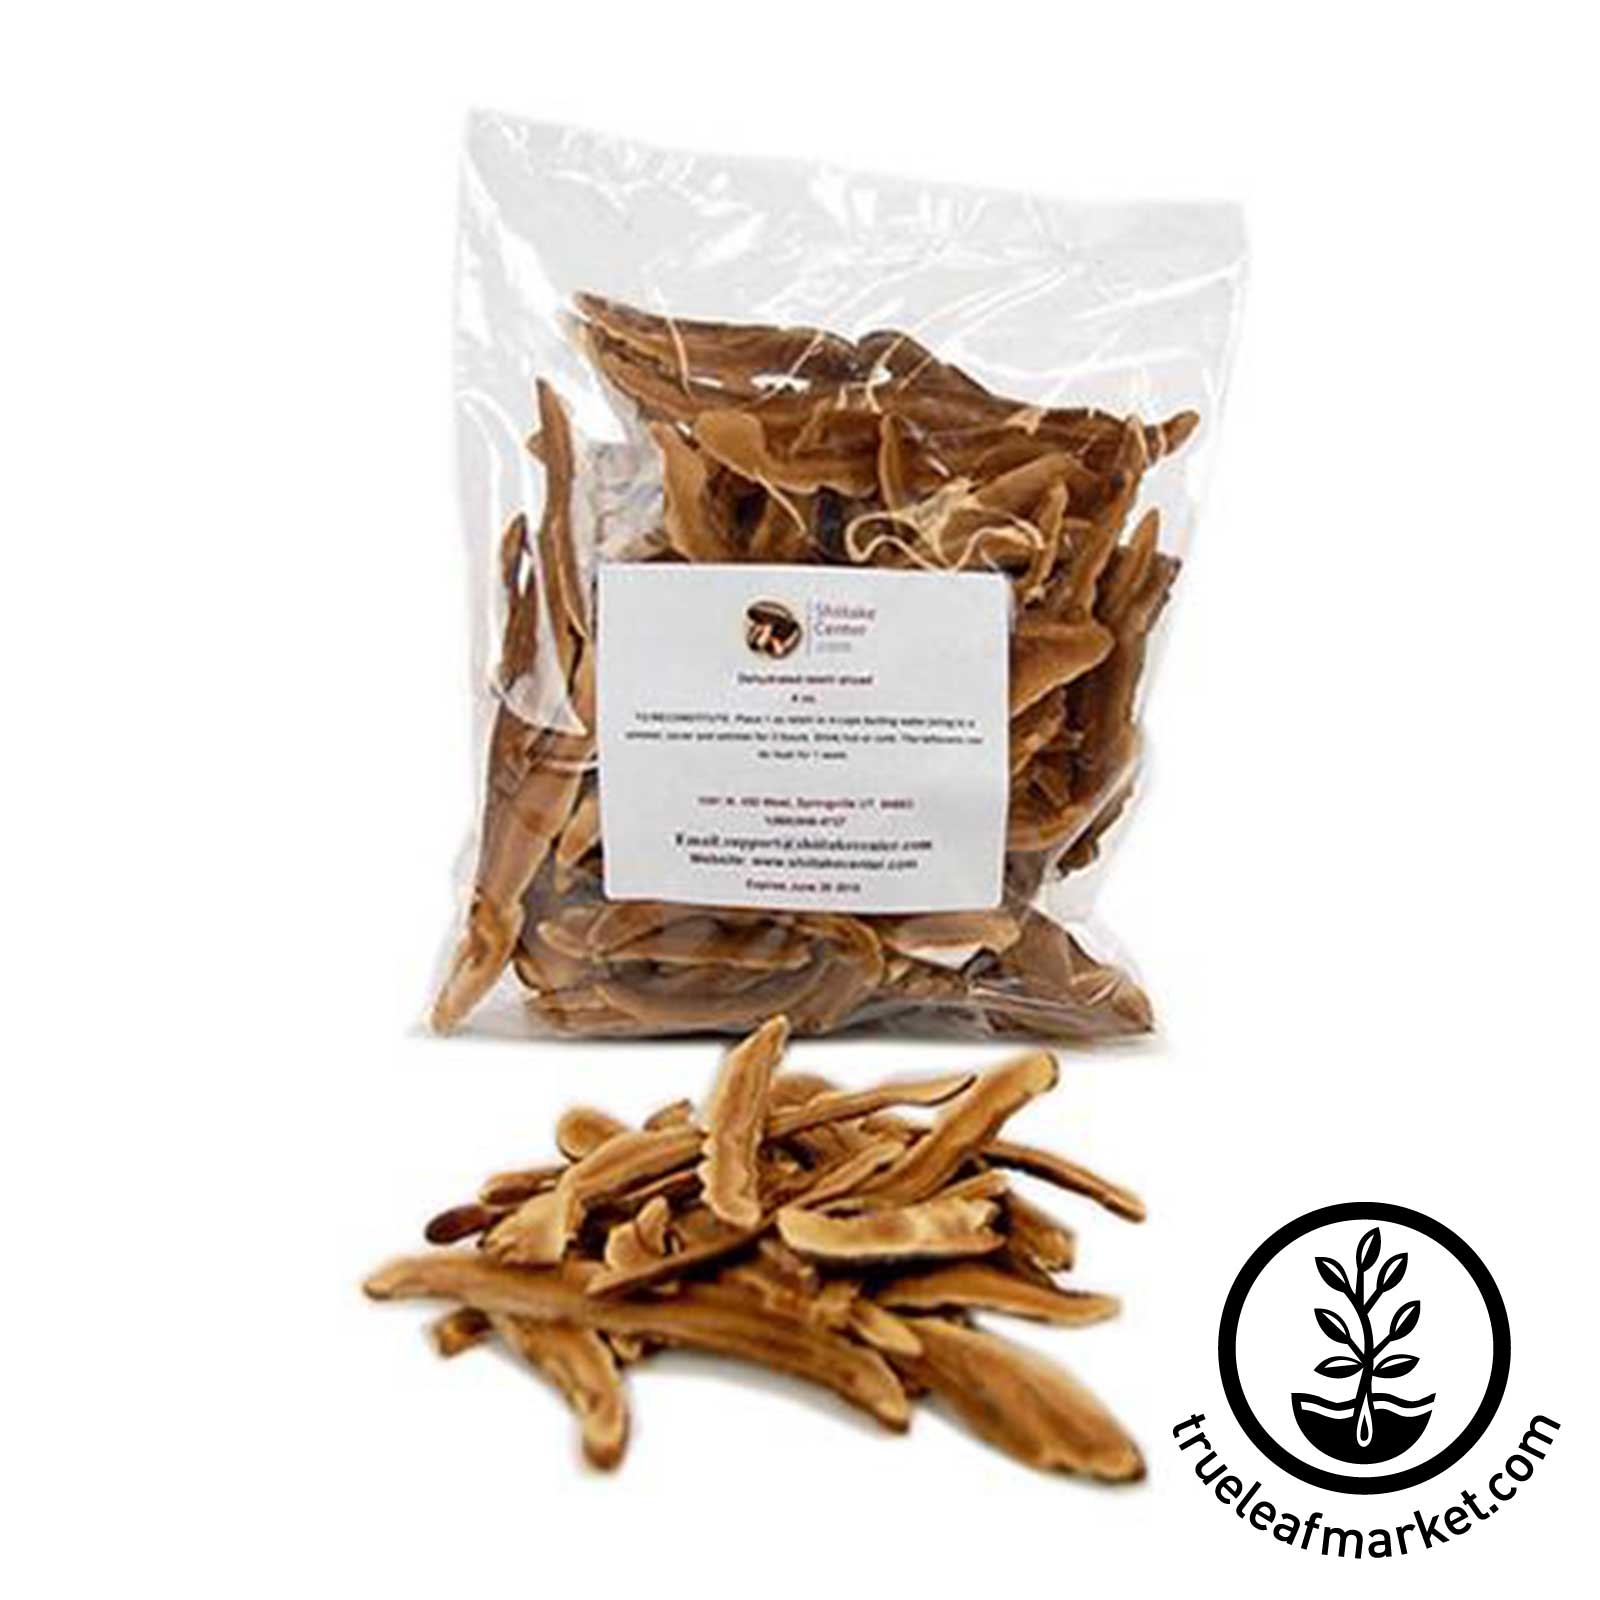 Dried Reishi Mushroom Tea reishi, mushrooms, dried, dehydrated, sliced, whole, medicinal tea, mushroom tea